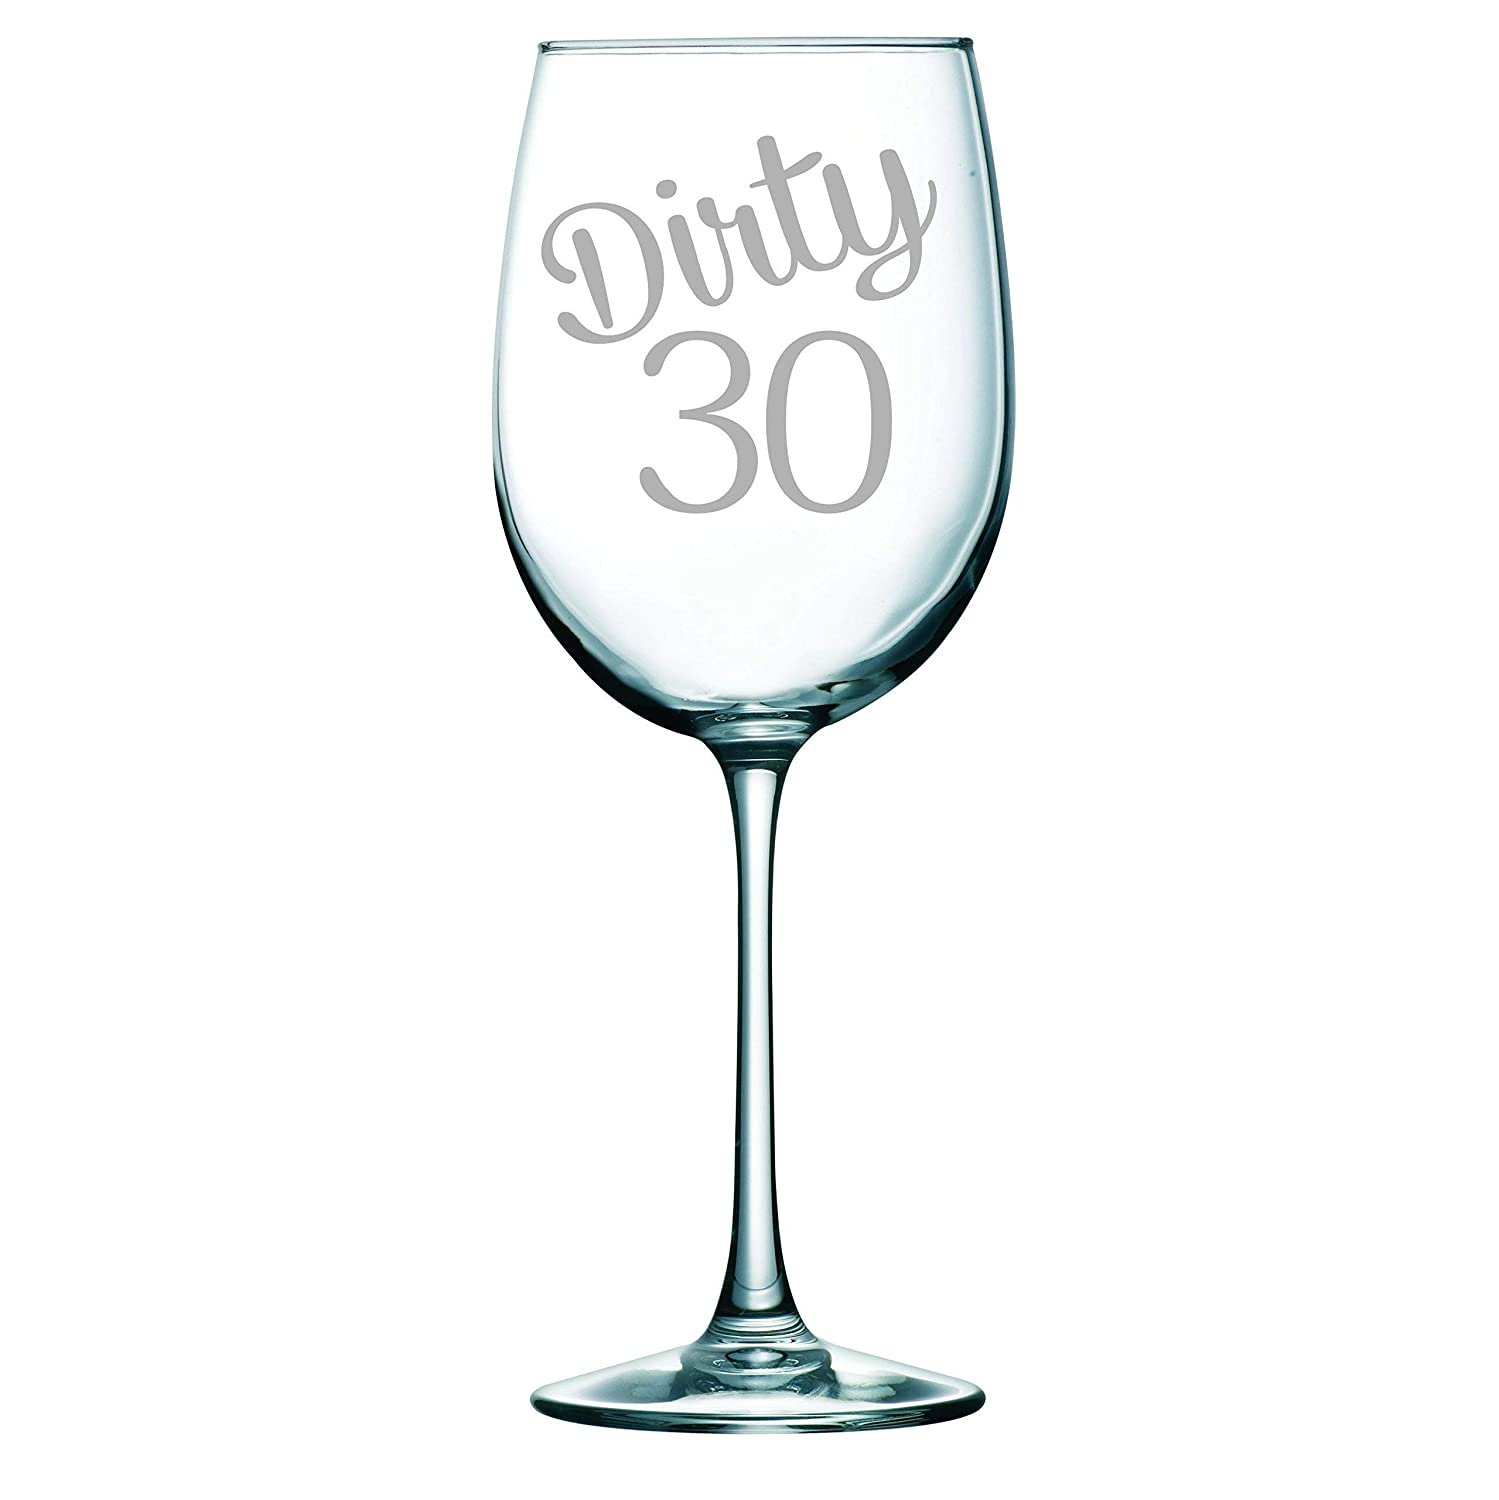 Dirty 30 Etched Wine Glass 19oz.